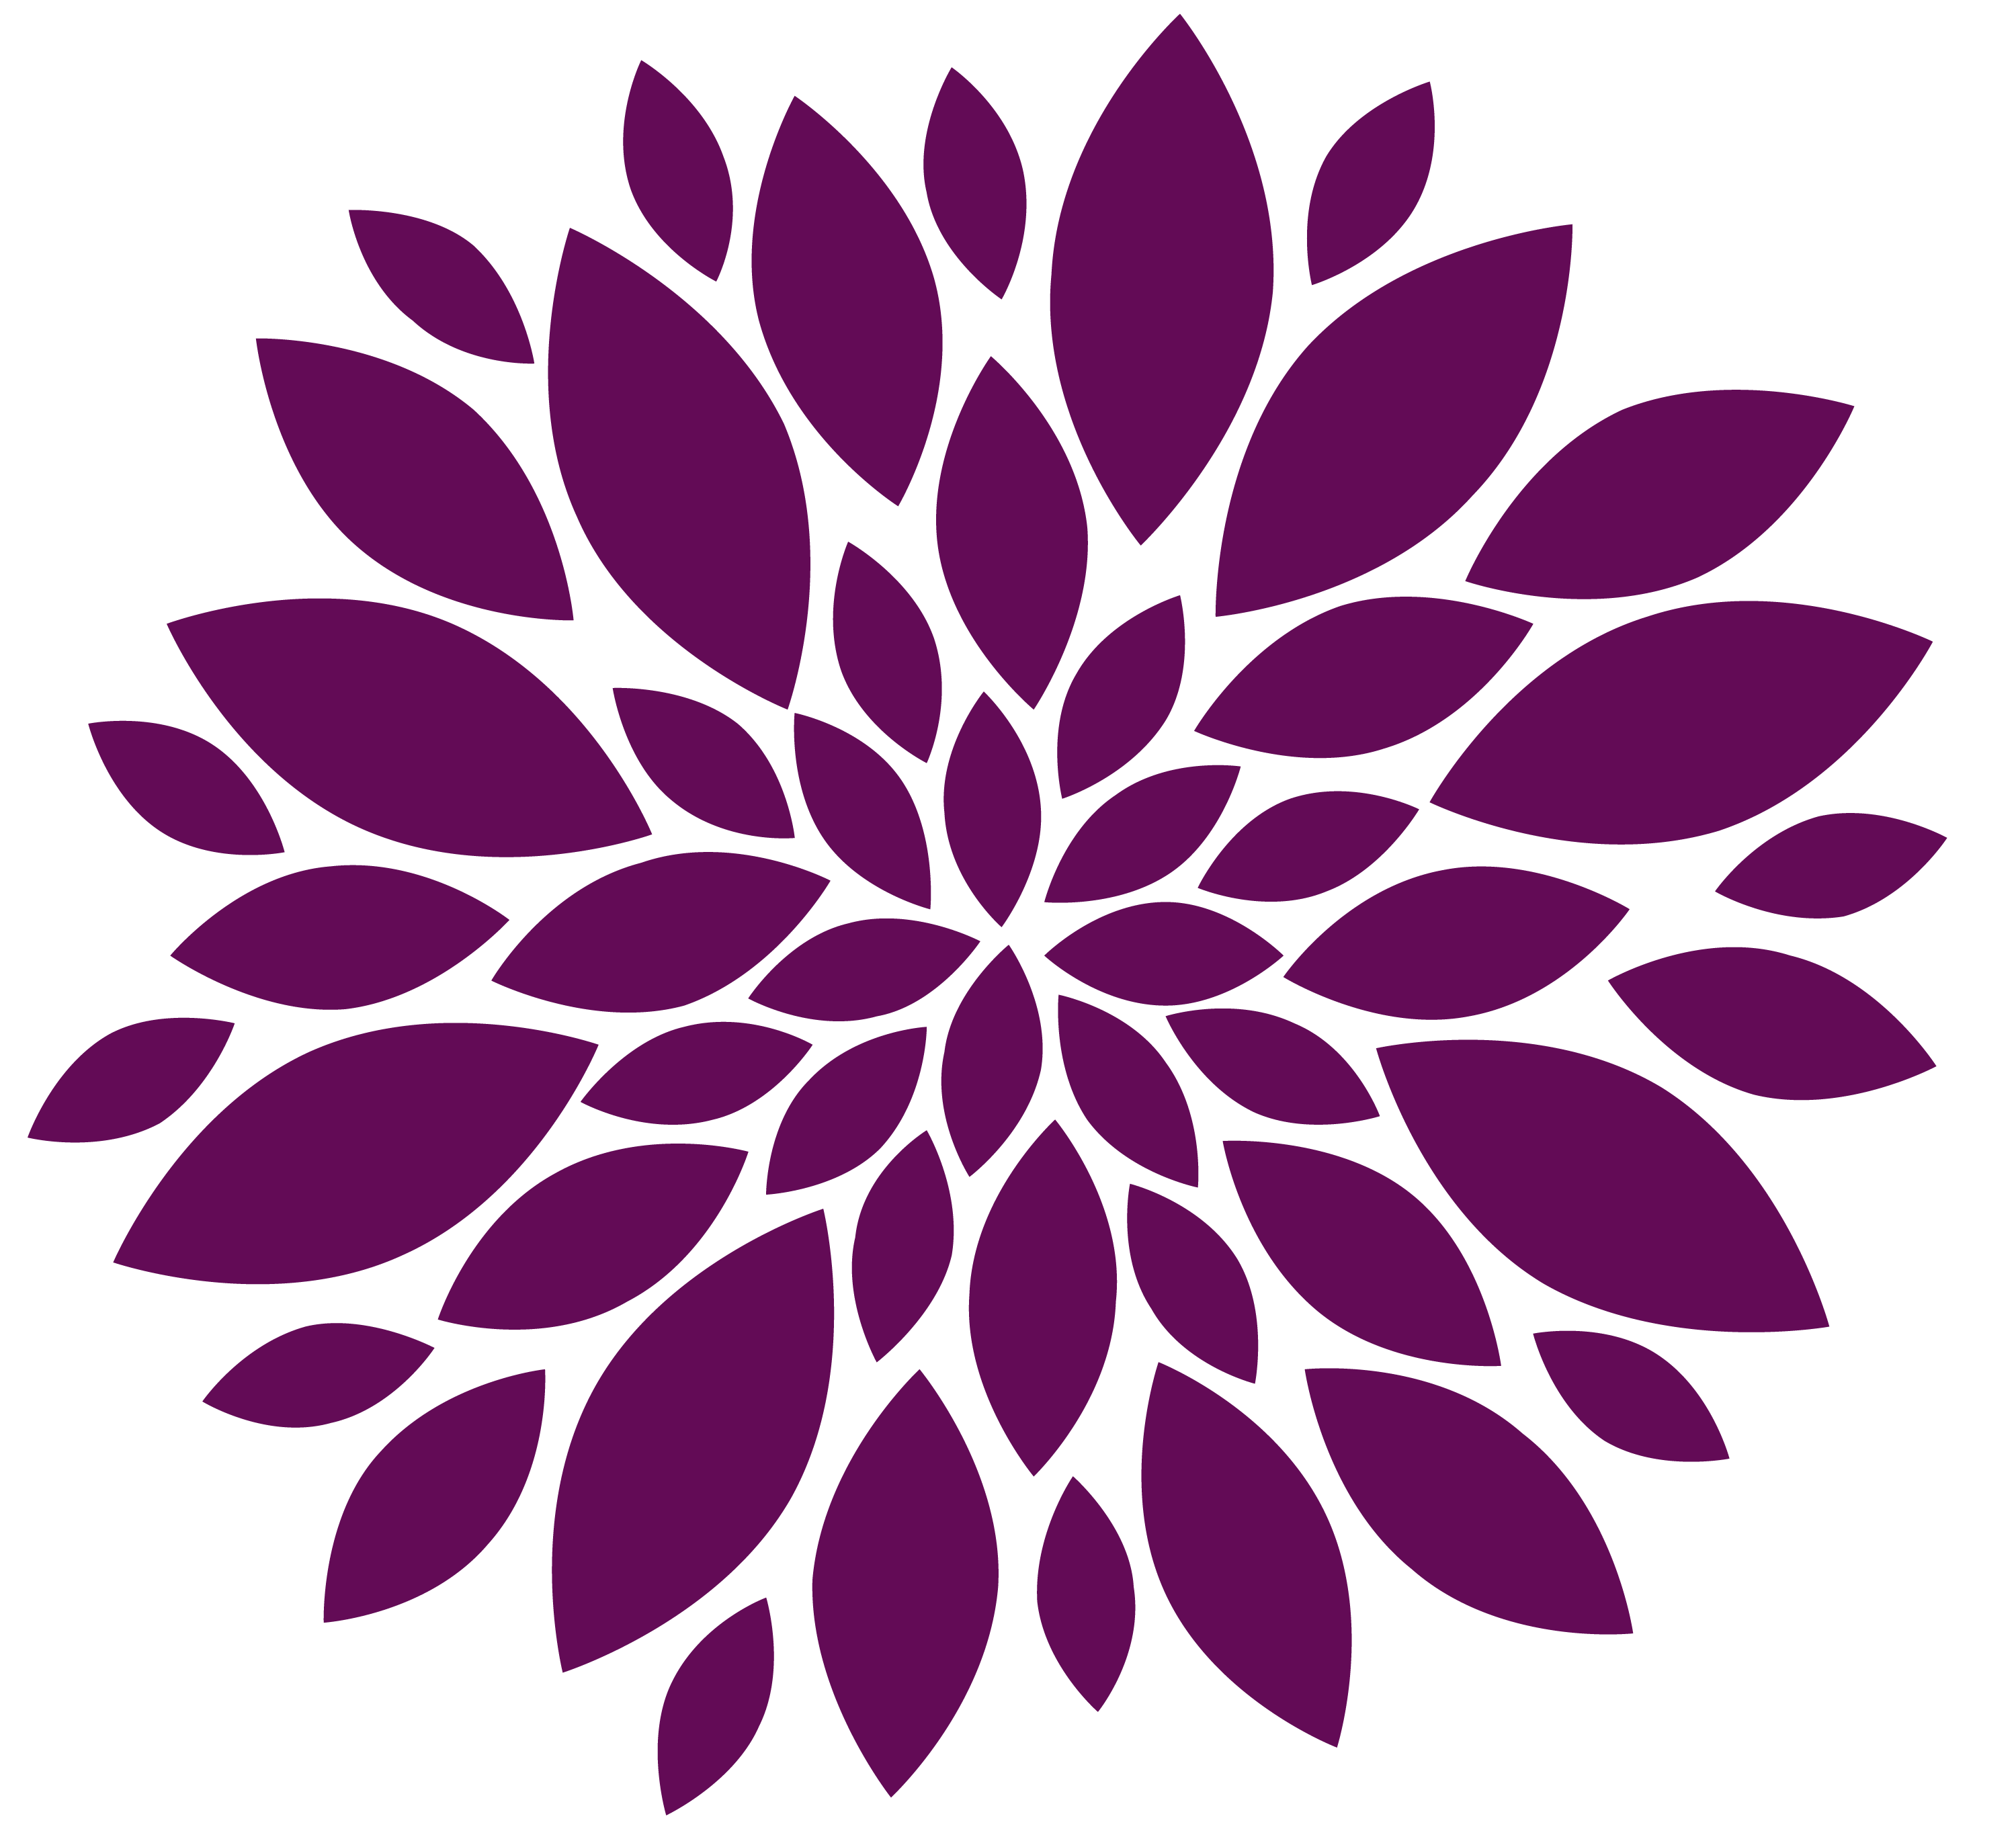 Flowers image is a. Flower silhouette png